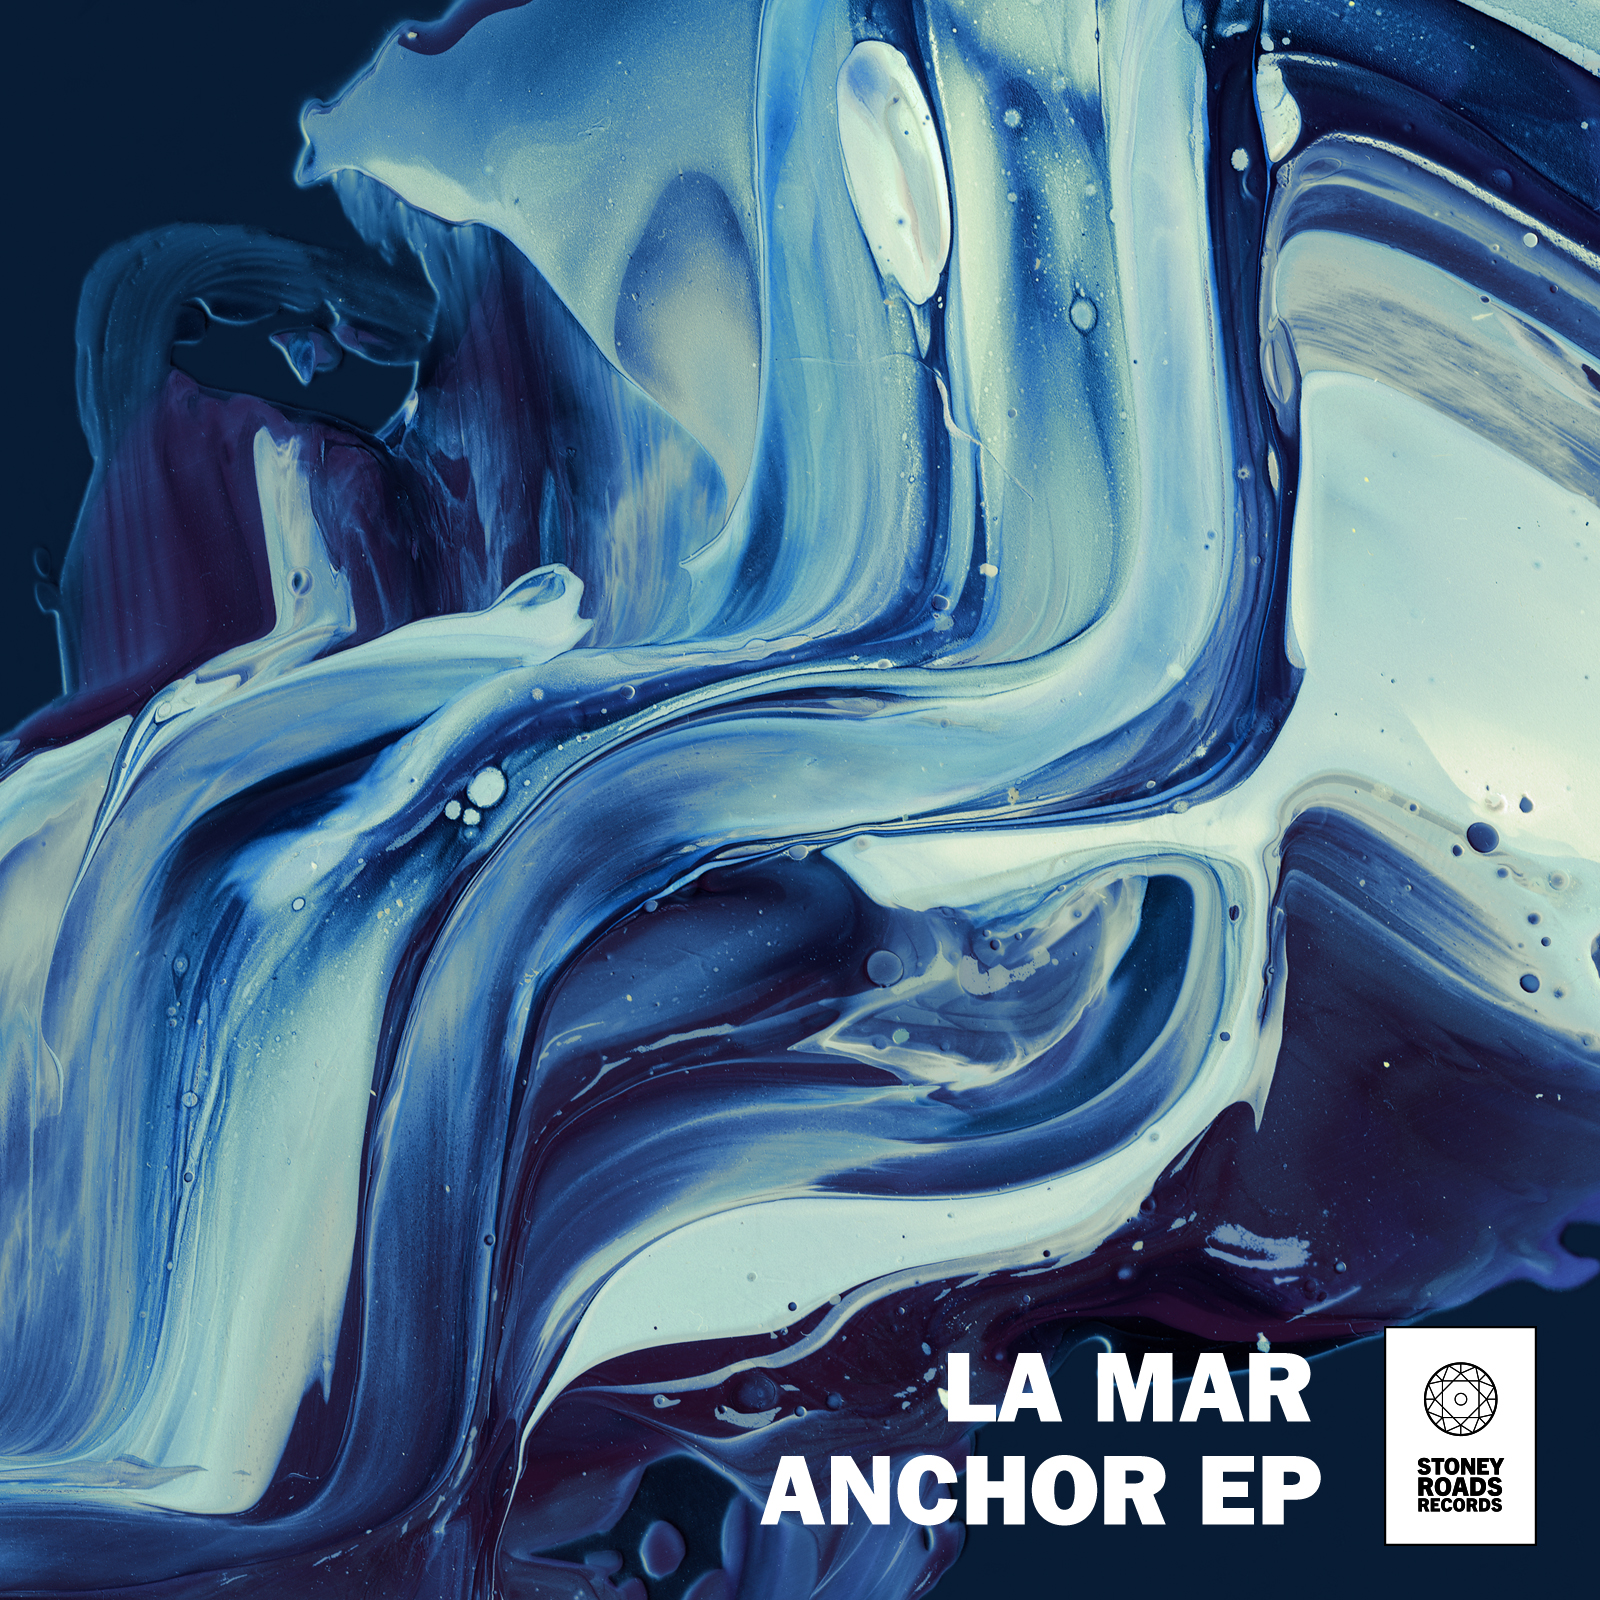 La Mar Anchor EP1